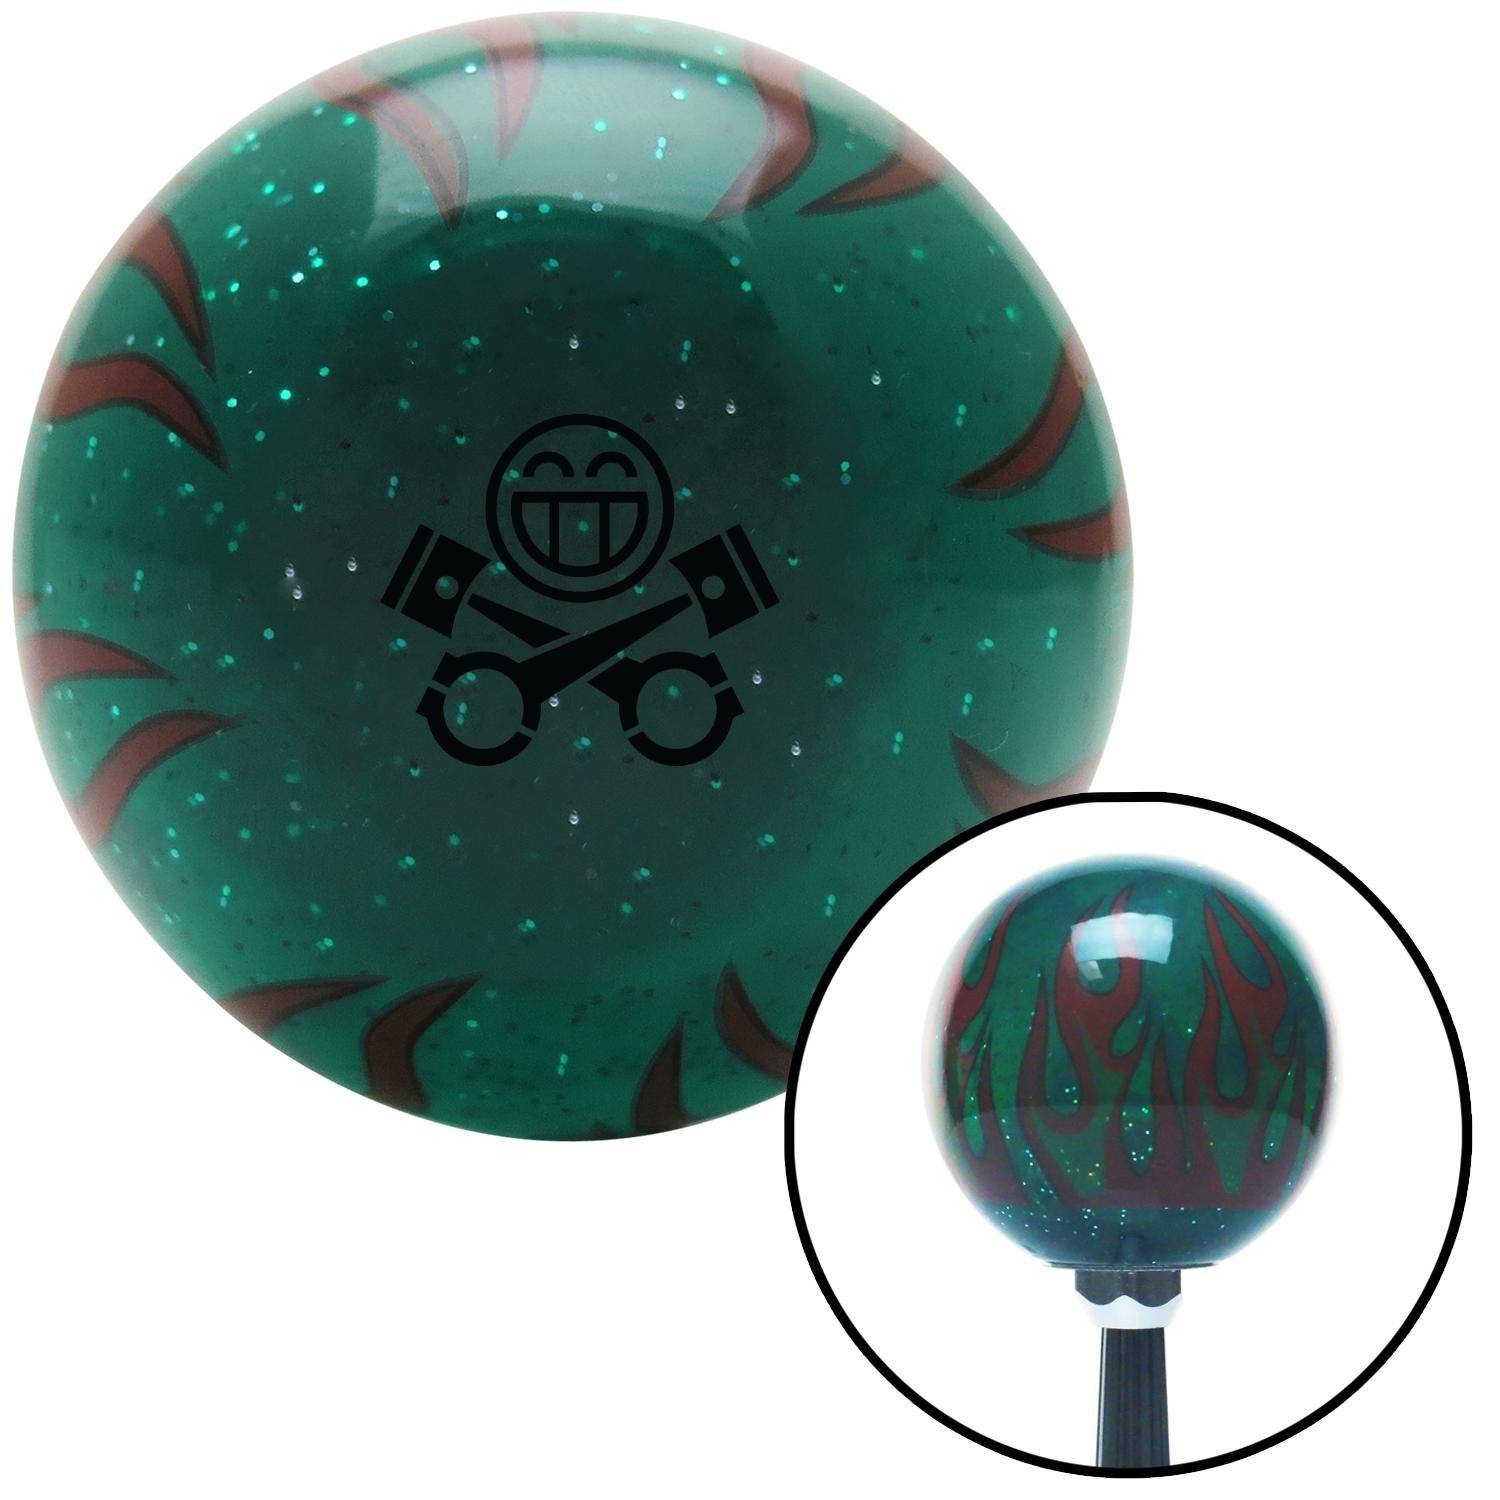 American Shifter 300574 Shift Knob Black Smiley Pistons Green Flame Metal Flake with M16 x 1.5 Insert